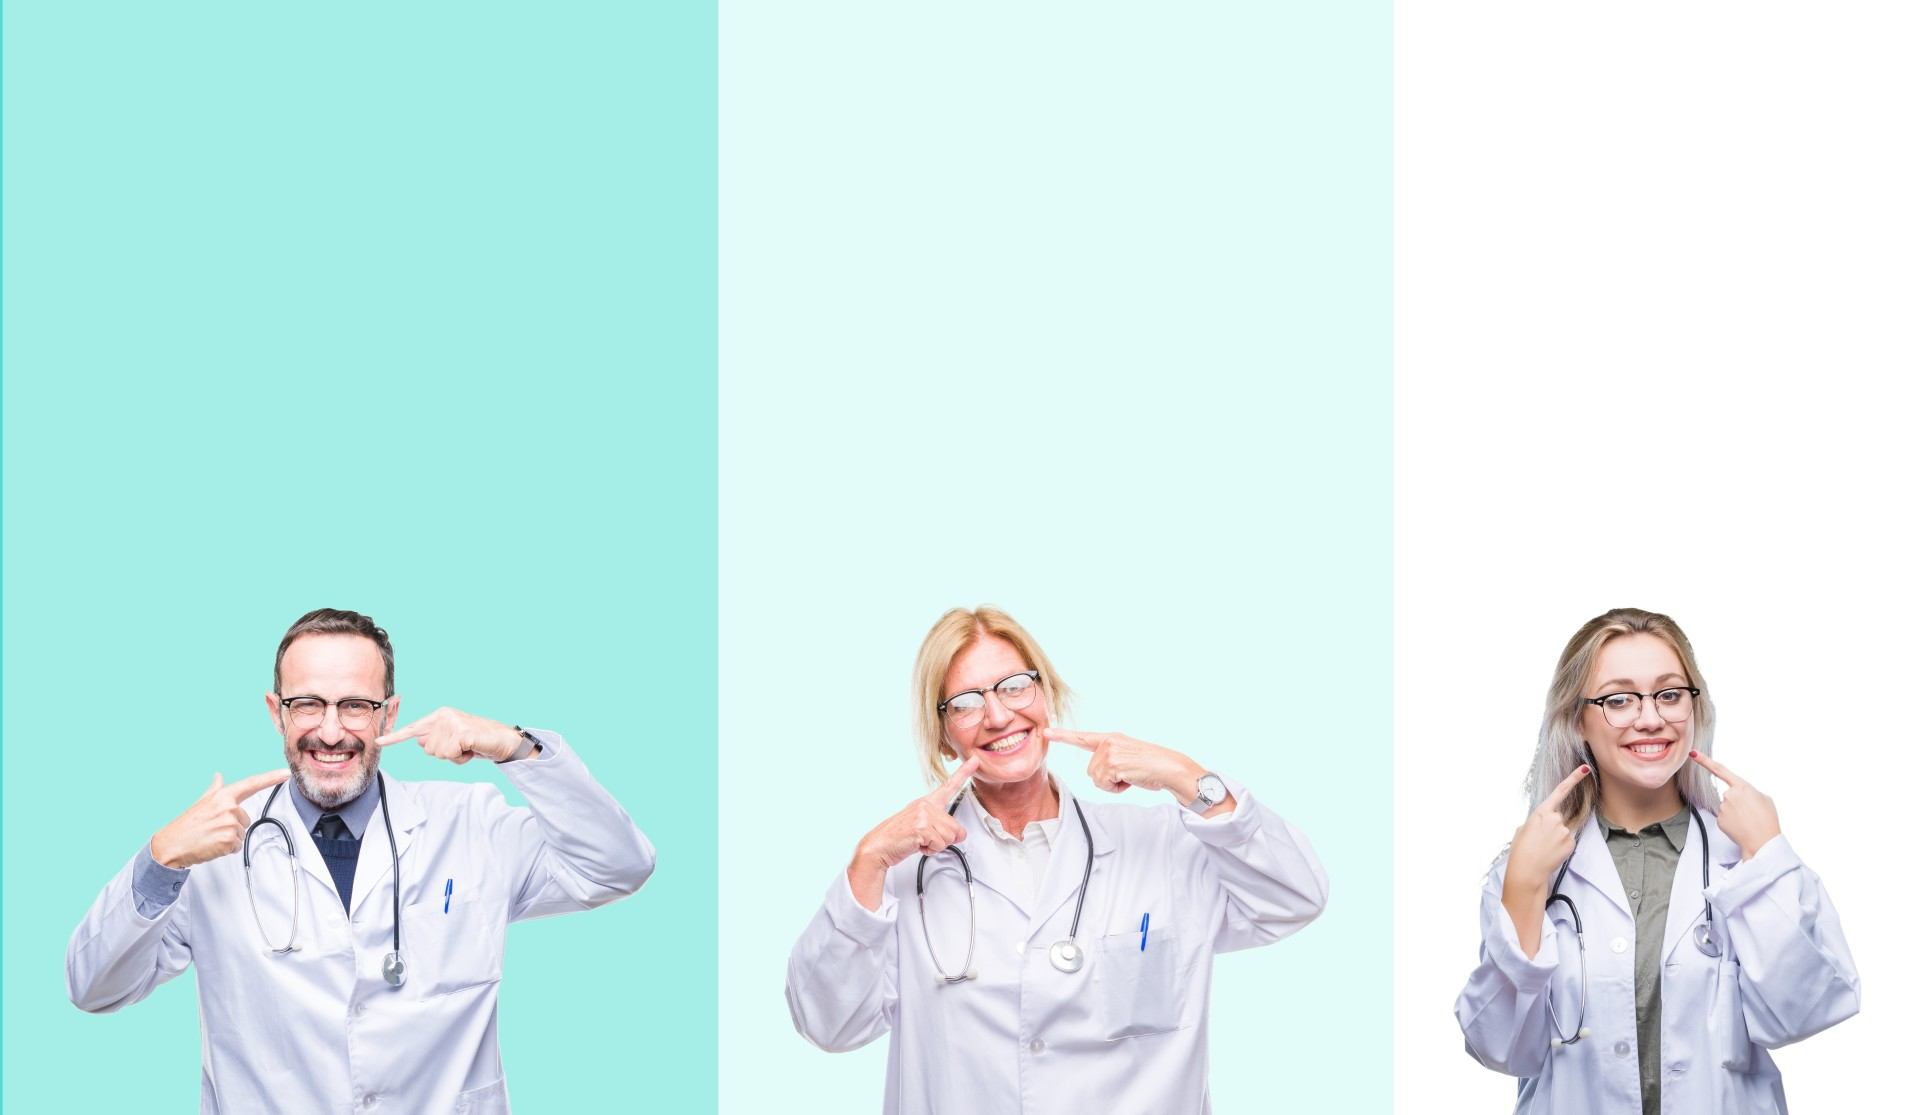 Senior general dentist and friendly specialty team take your satisfaction as their goal.